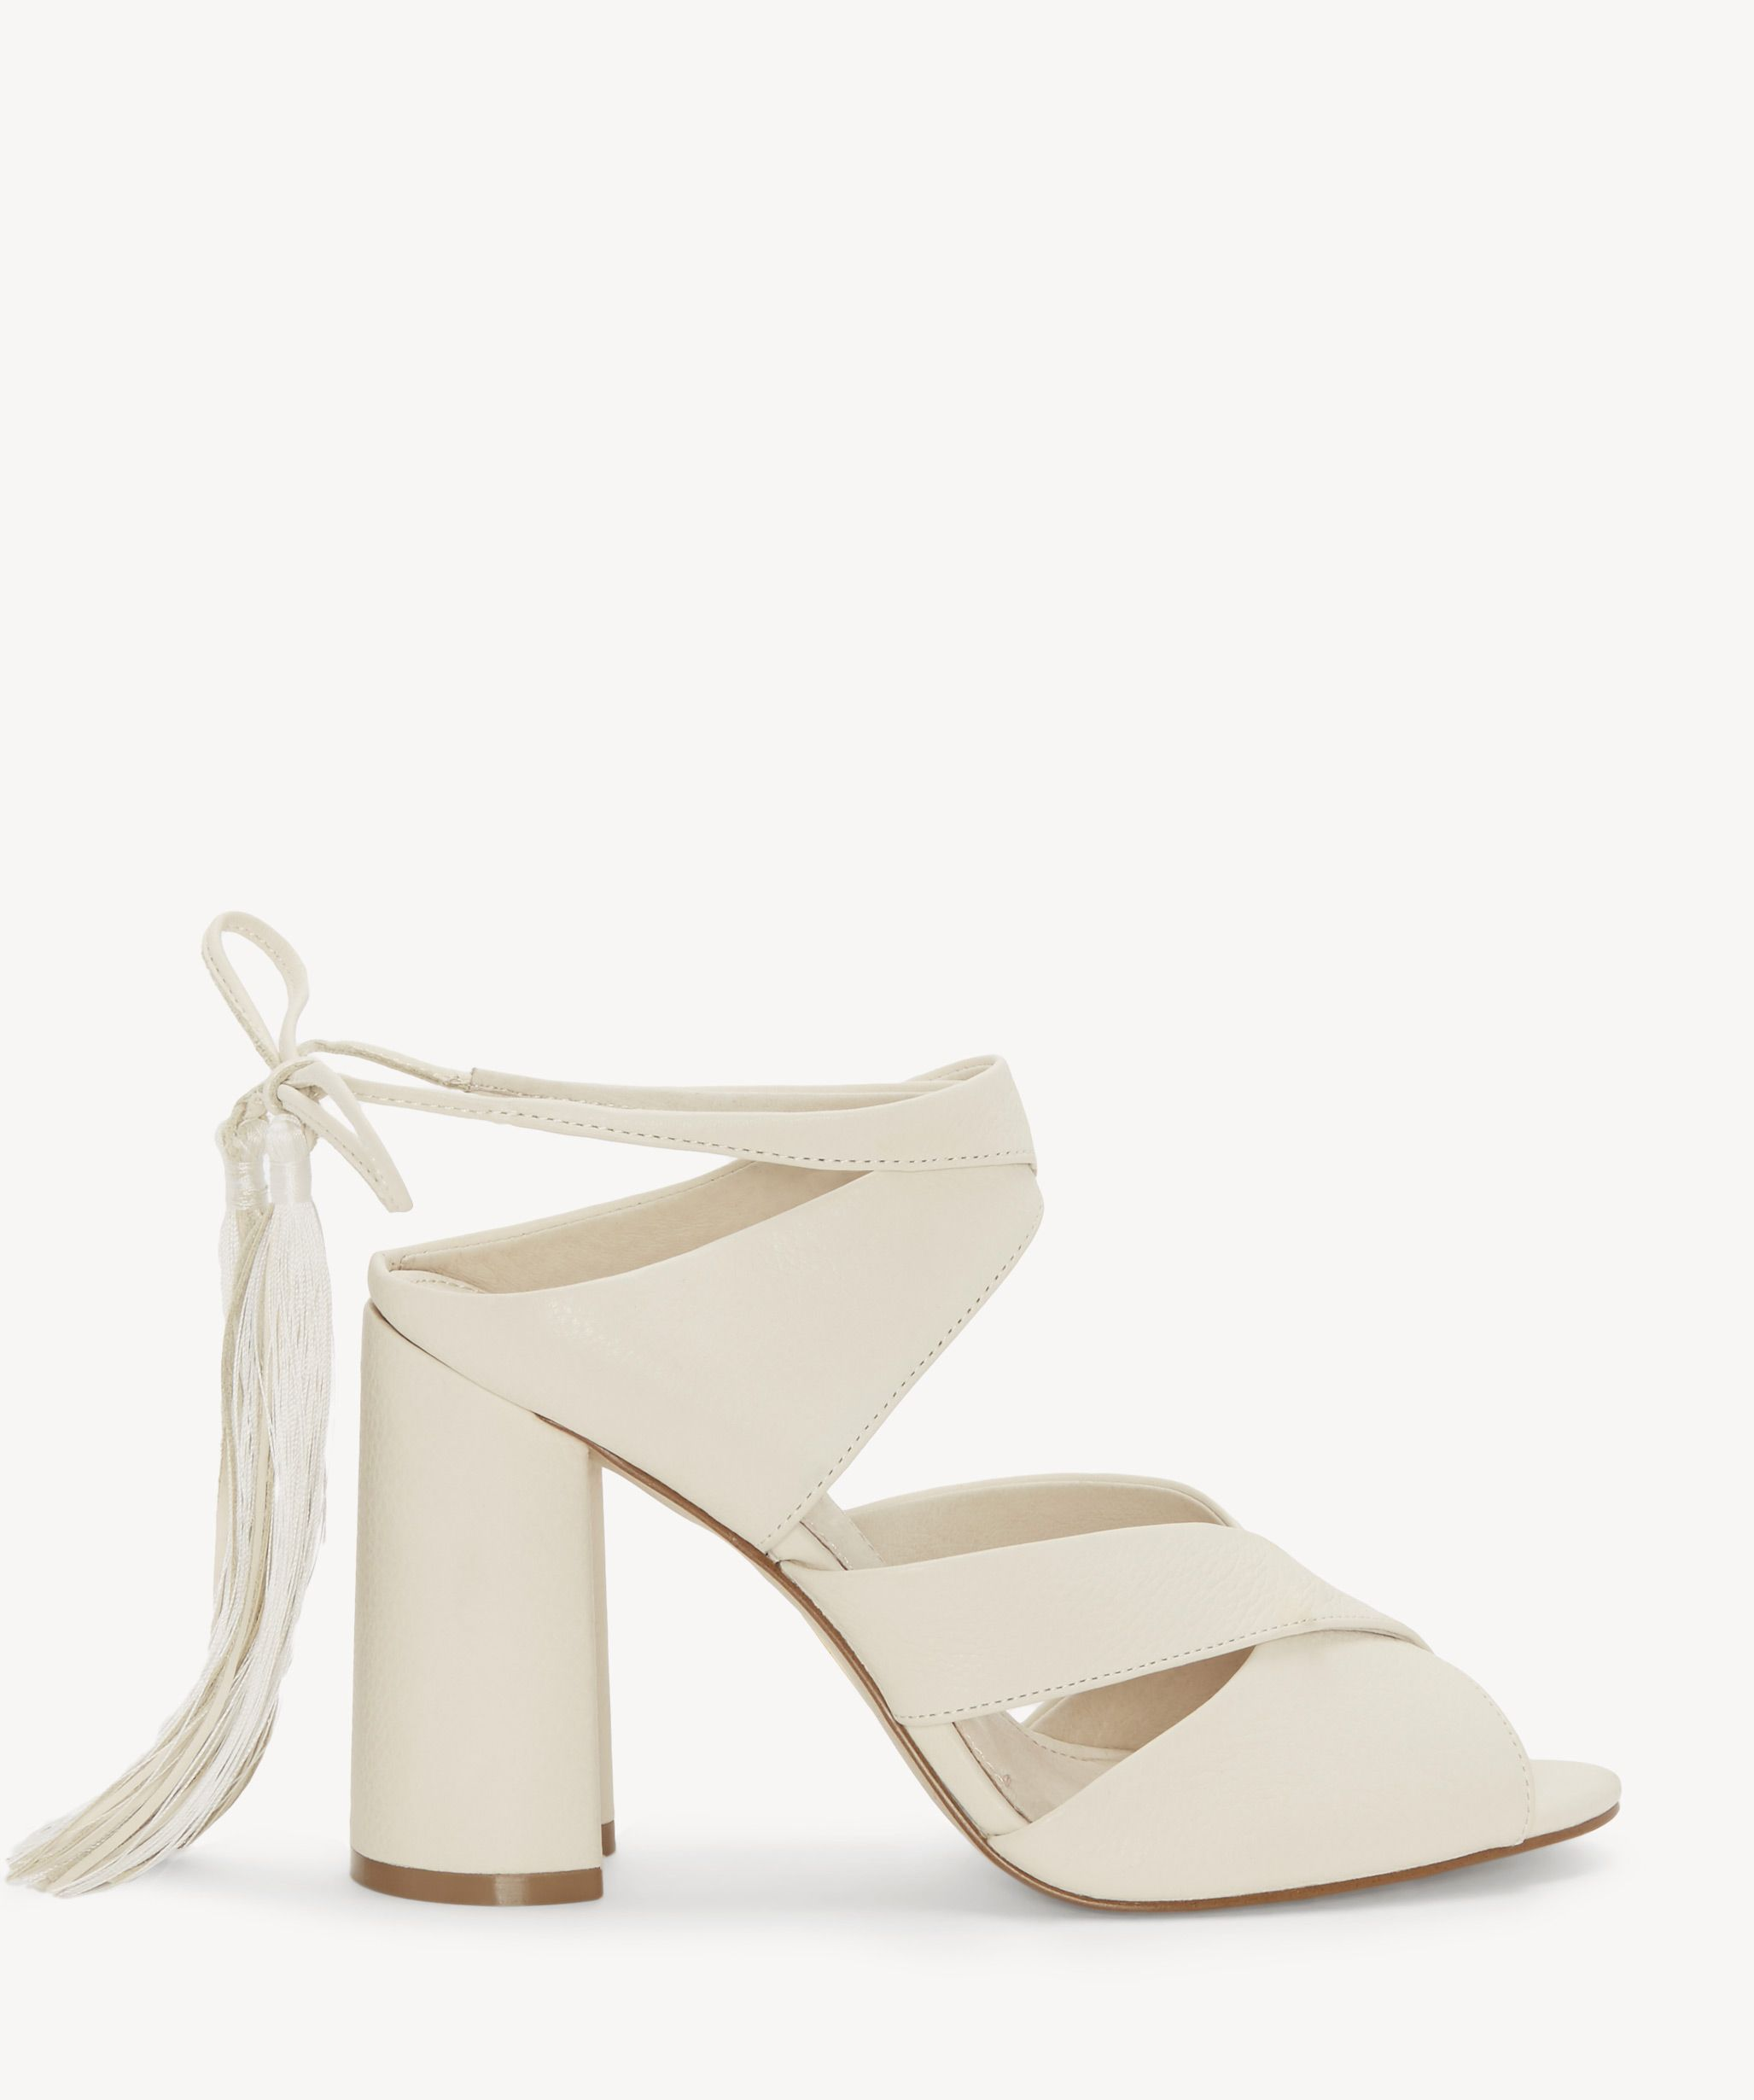 c713752b128a Louise Et Cie Women's Kaelina Strappy Block Heels Sandals Vanilla | Size 10  Suede From Sole Society